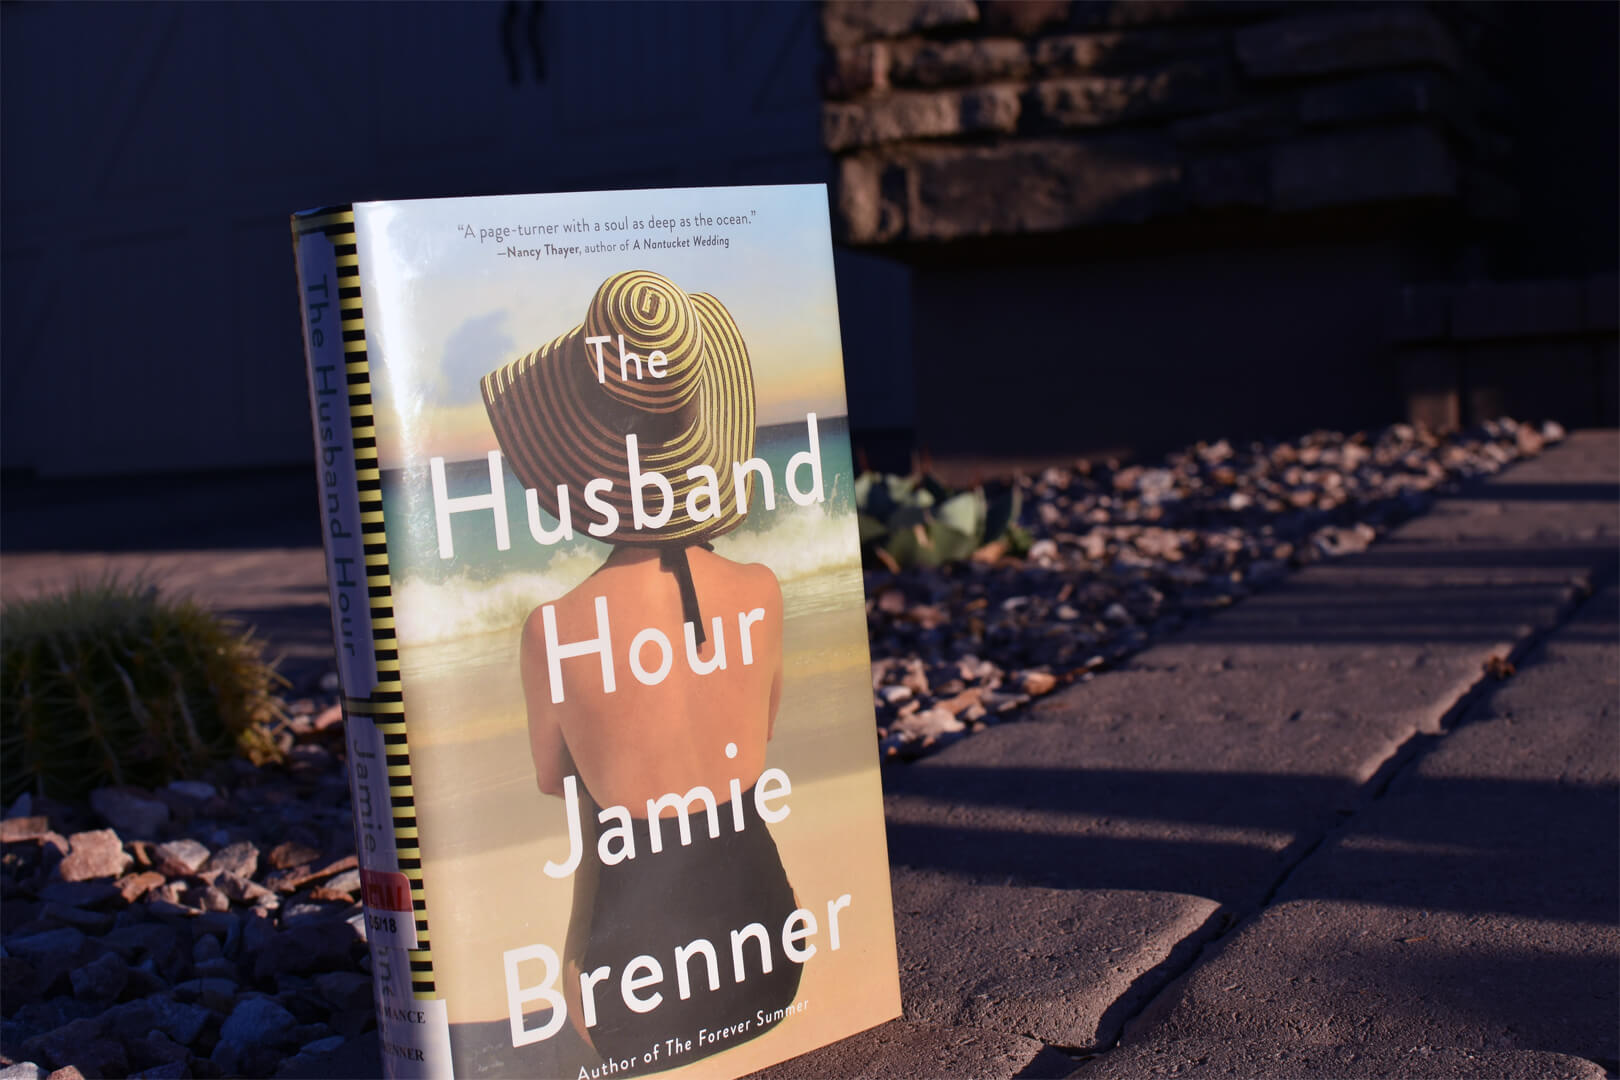 The Husband Hour Review - Book Club Chat